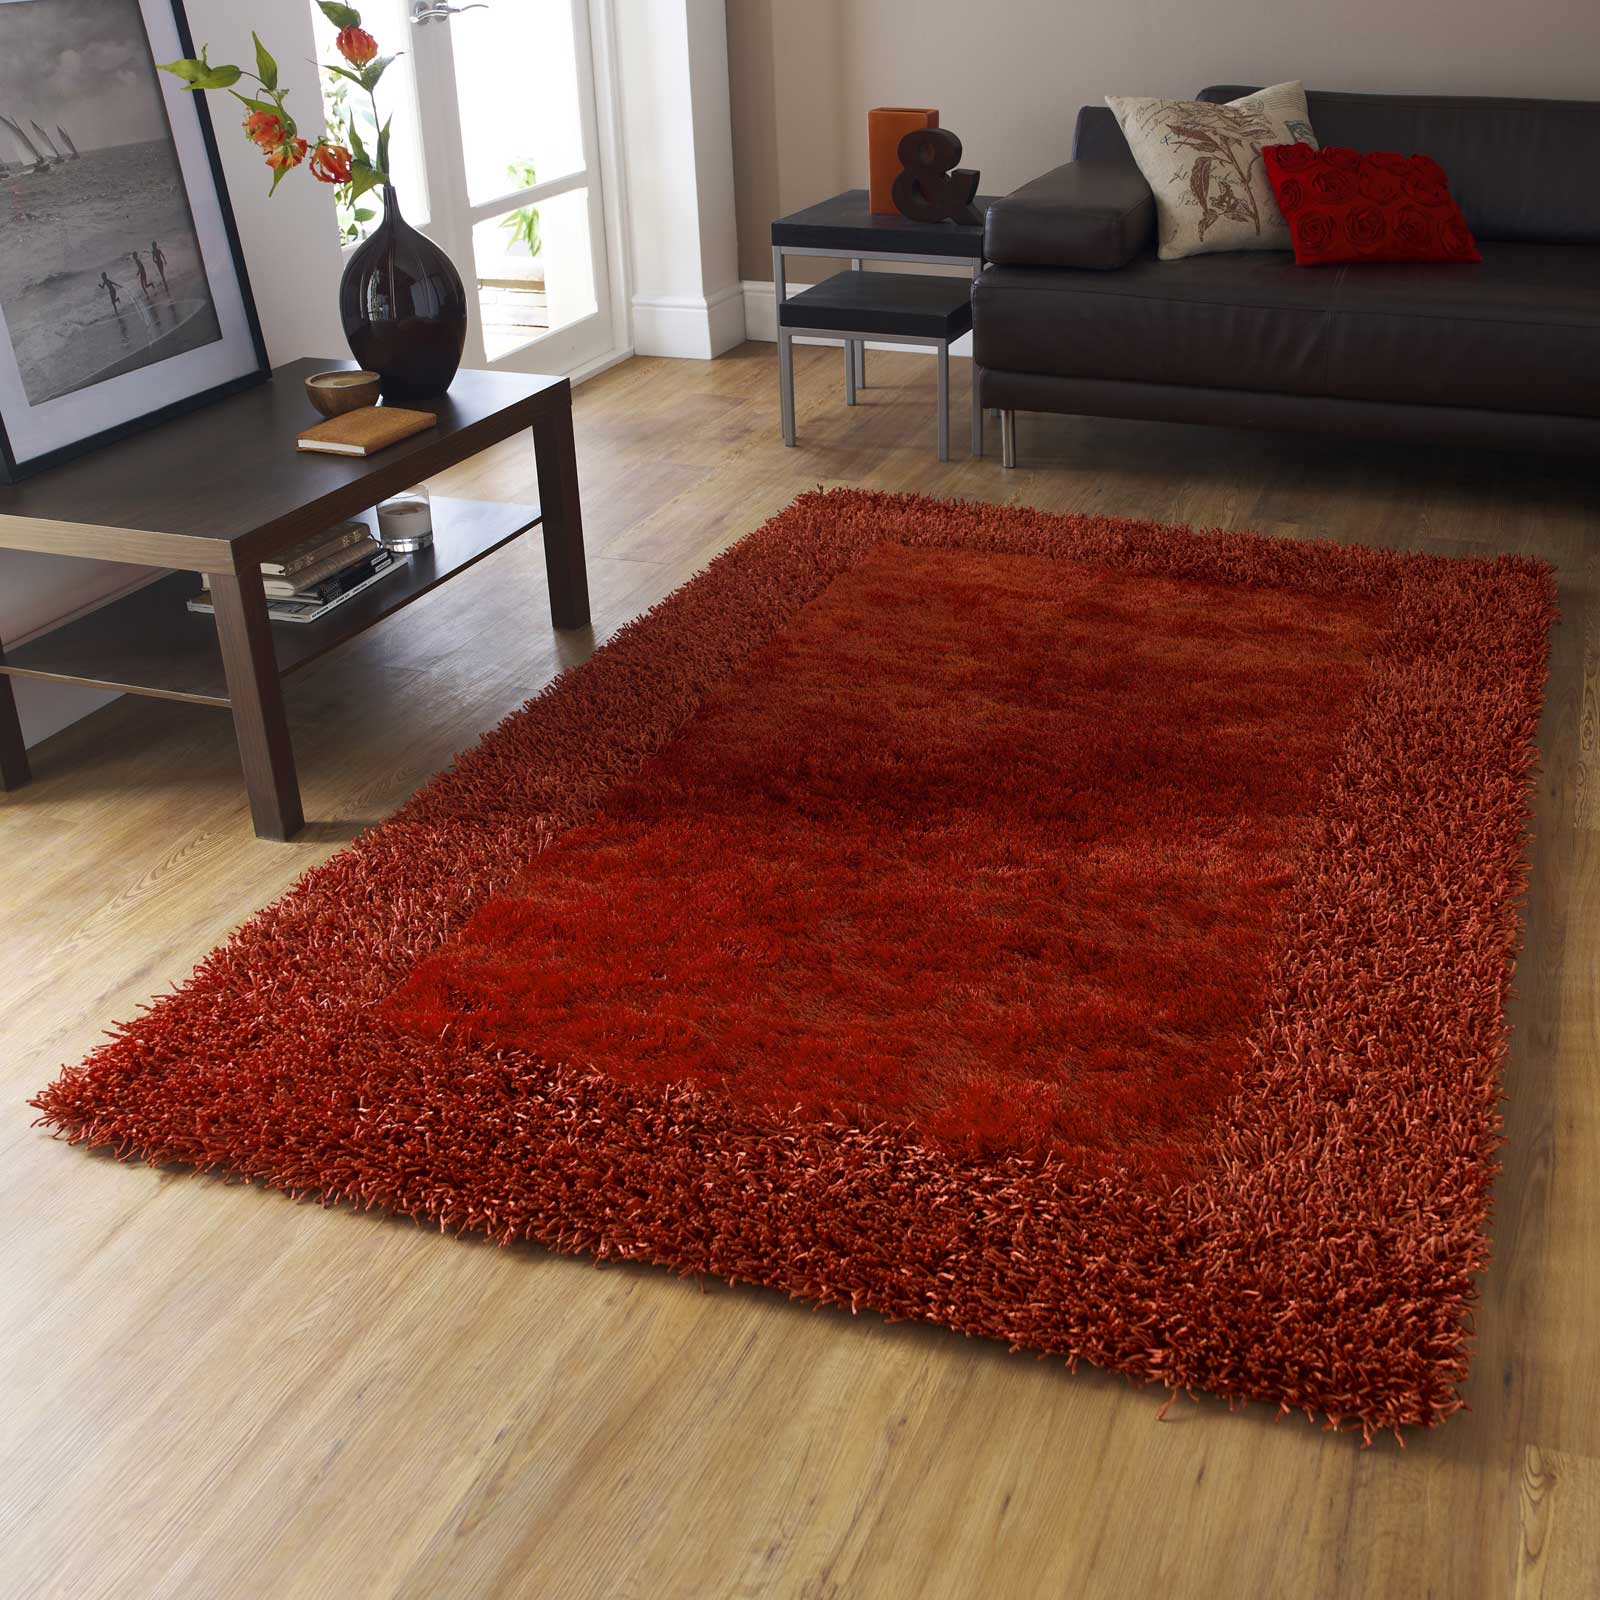 Sable Two Shiney Shaggy Rugs in Burnt Orange